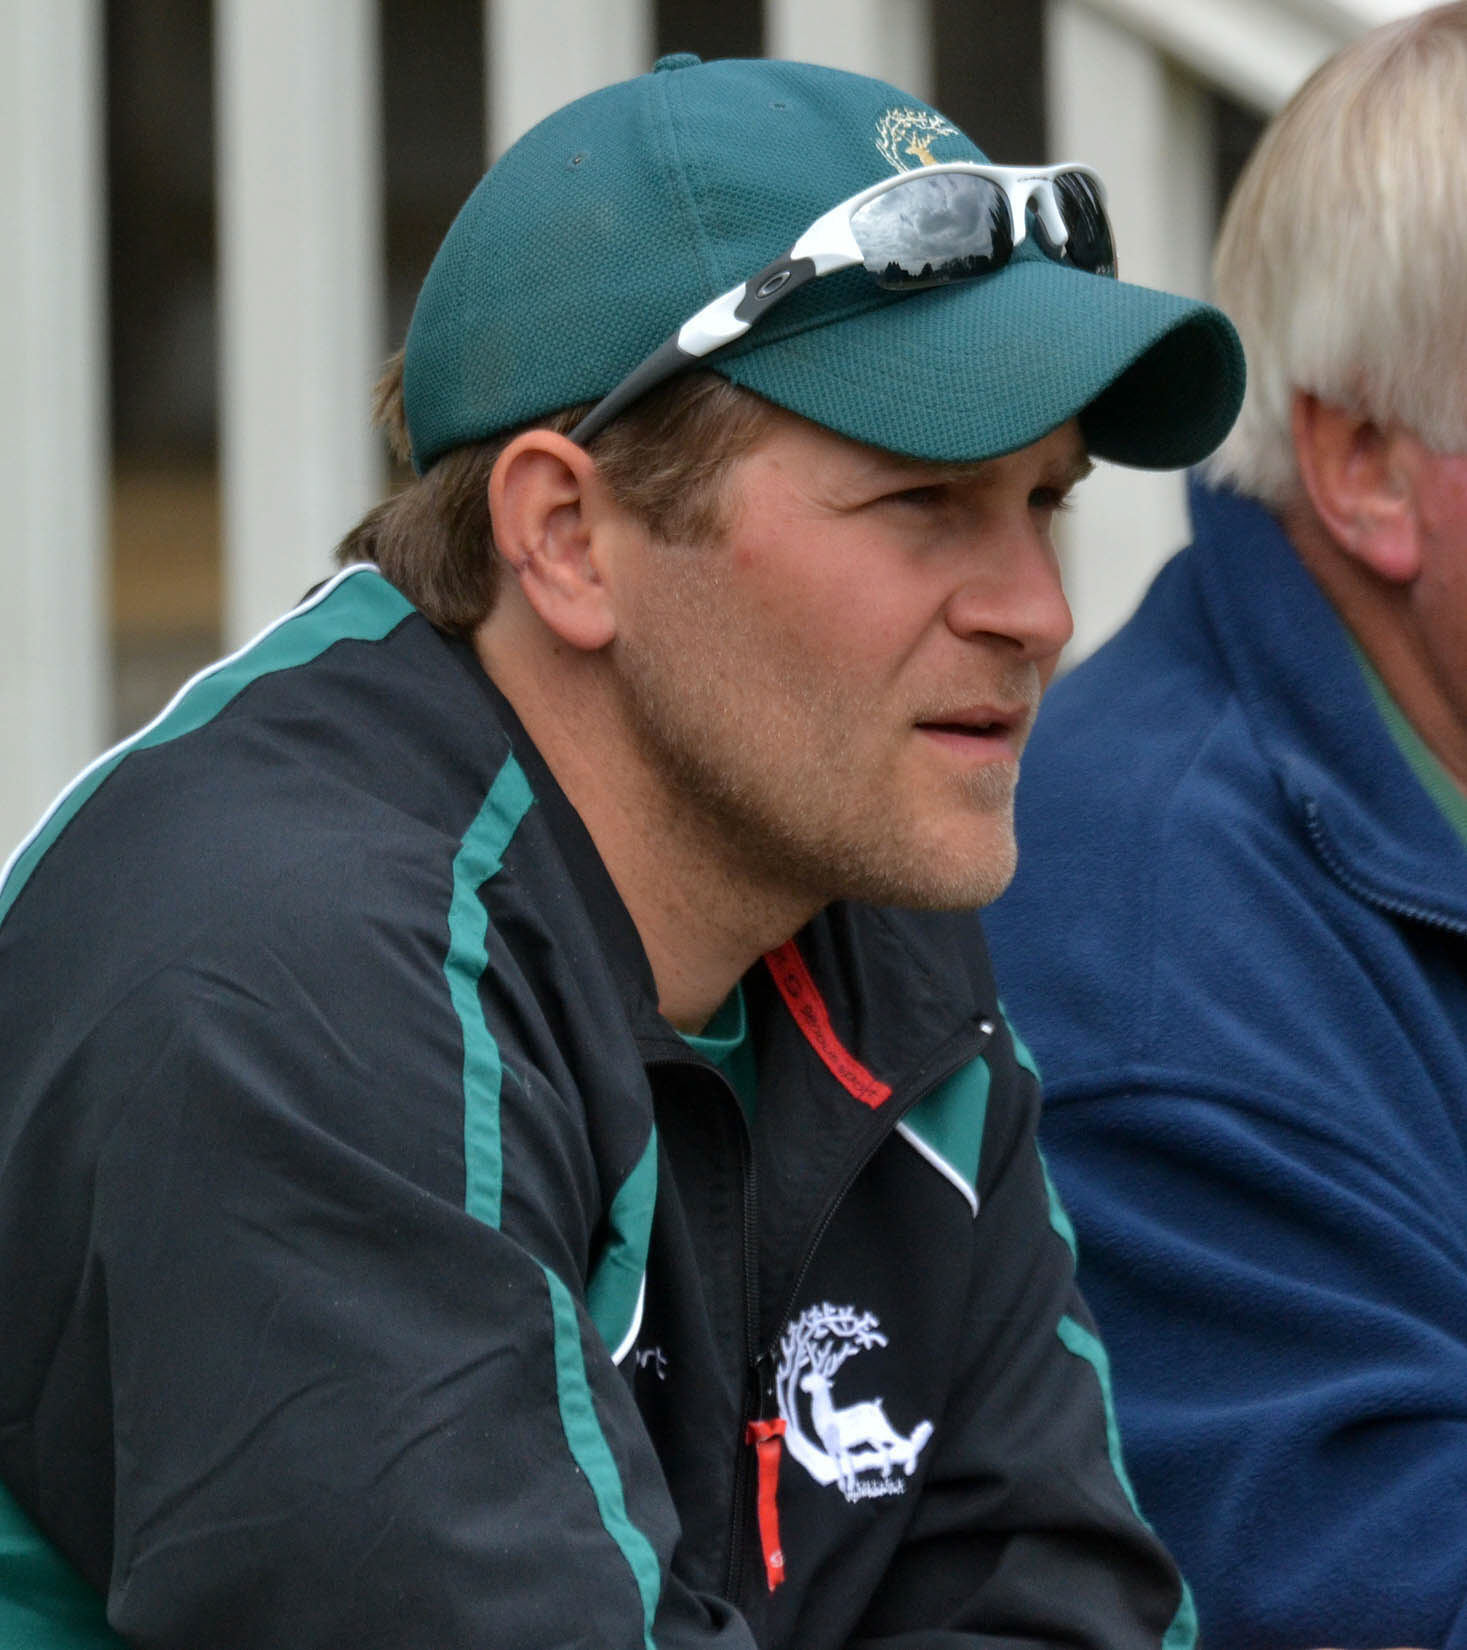 133345 Tom Lambert (Berks coach) at Berkshire vs Dorset Minor Counties cricket  Henley CC pic chris forsey 10/6/13.